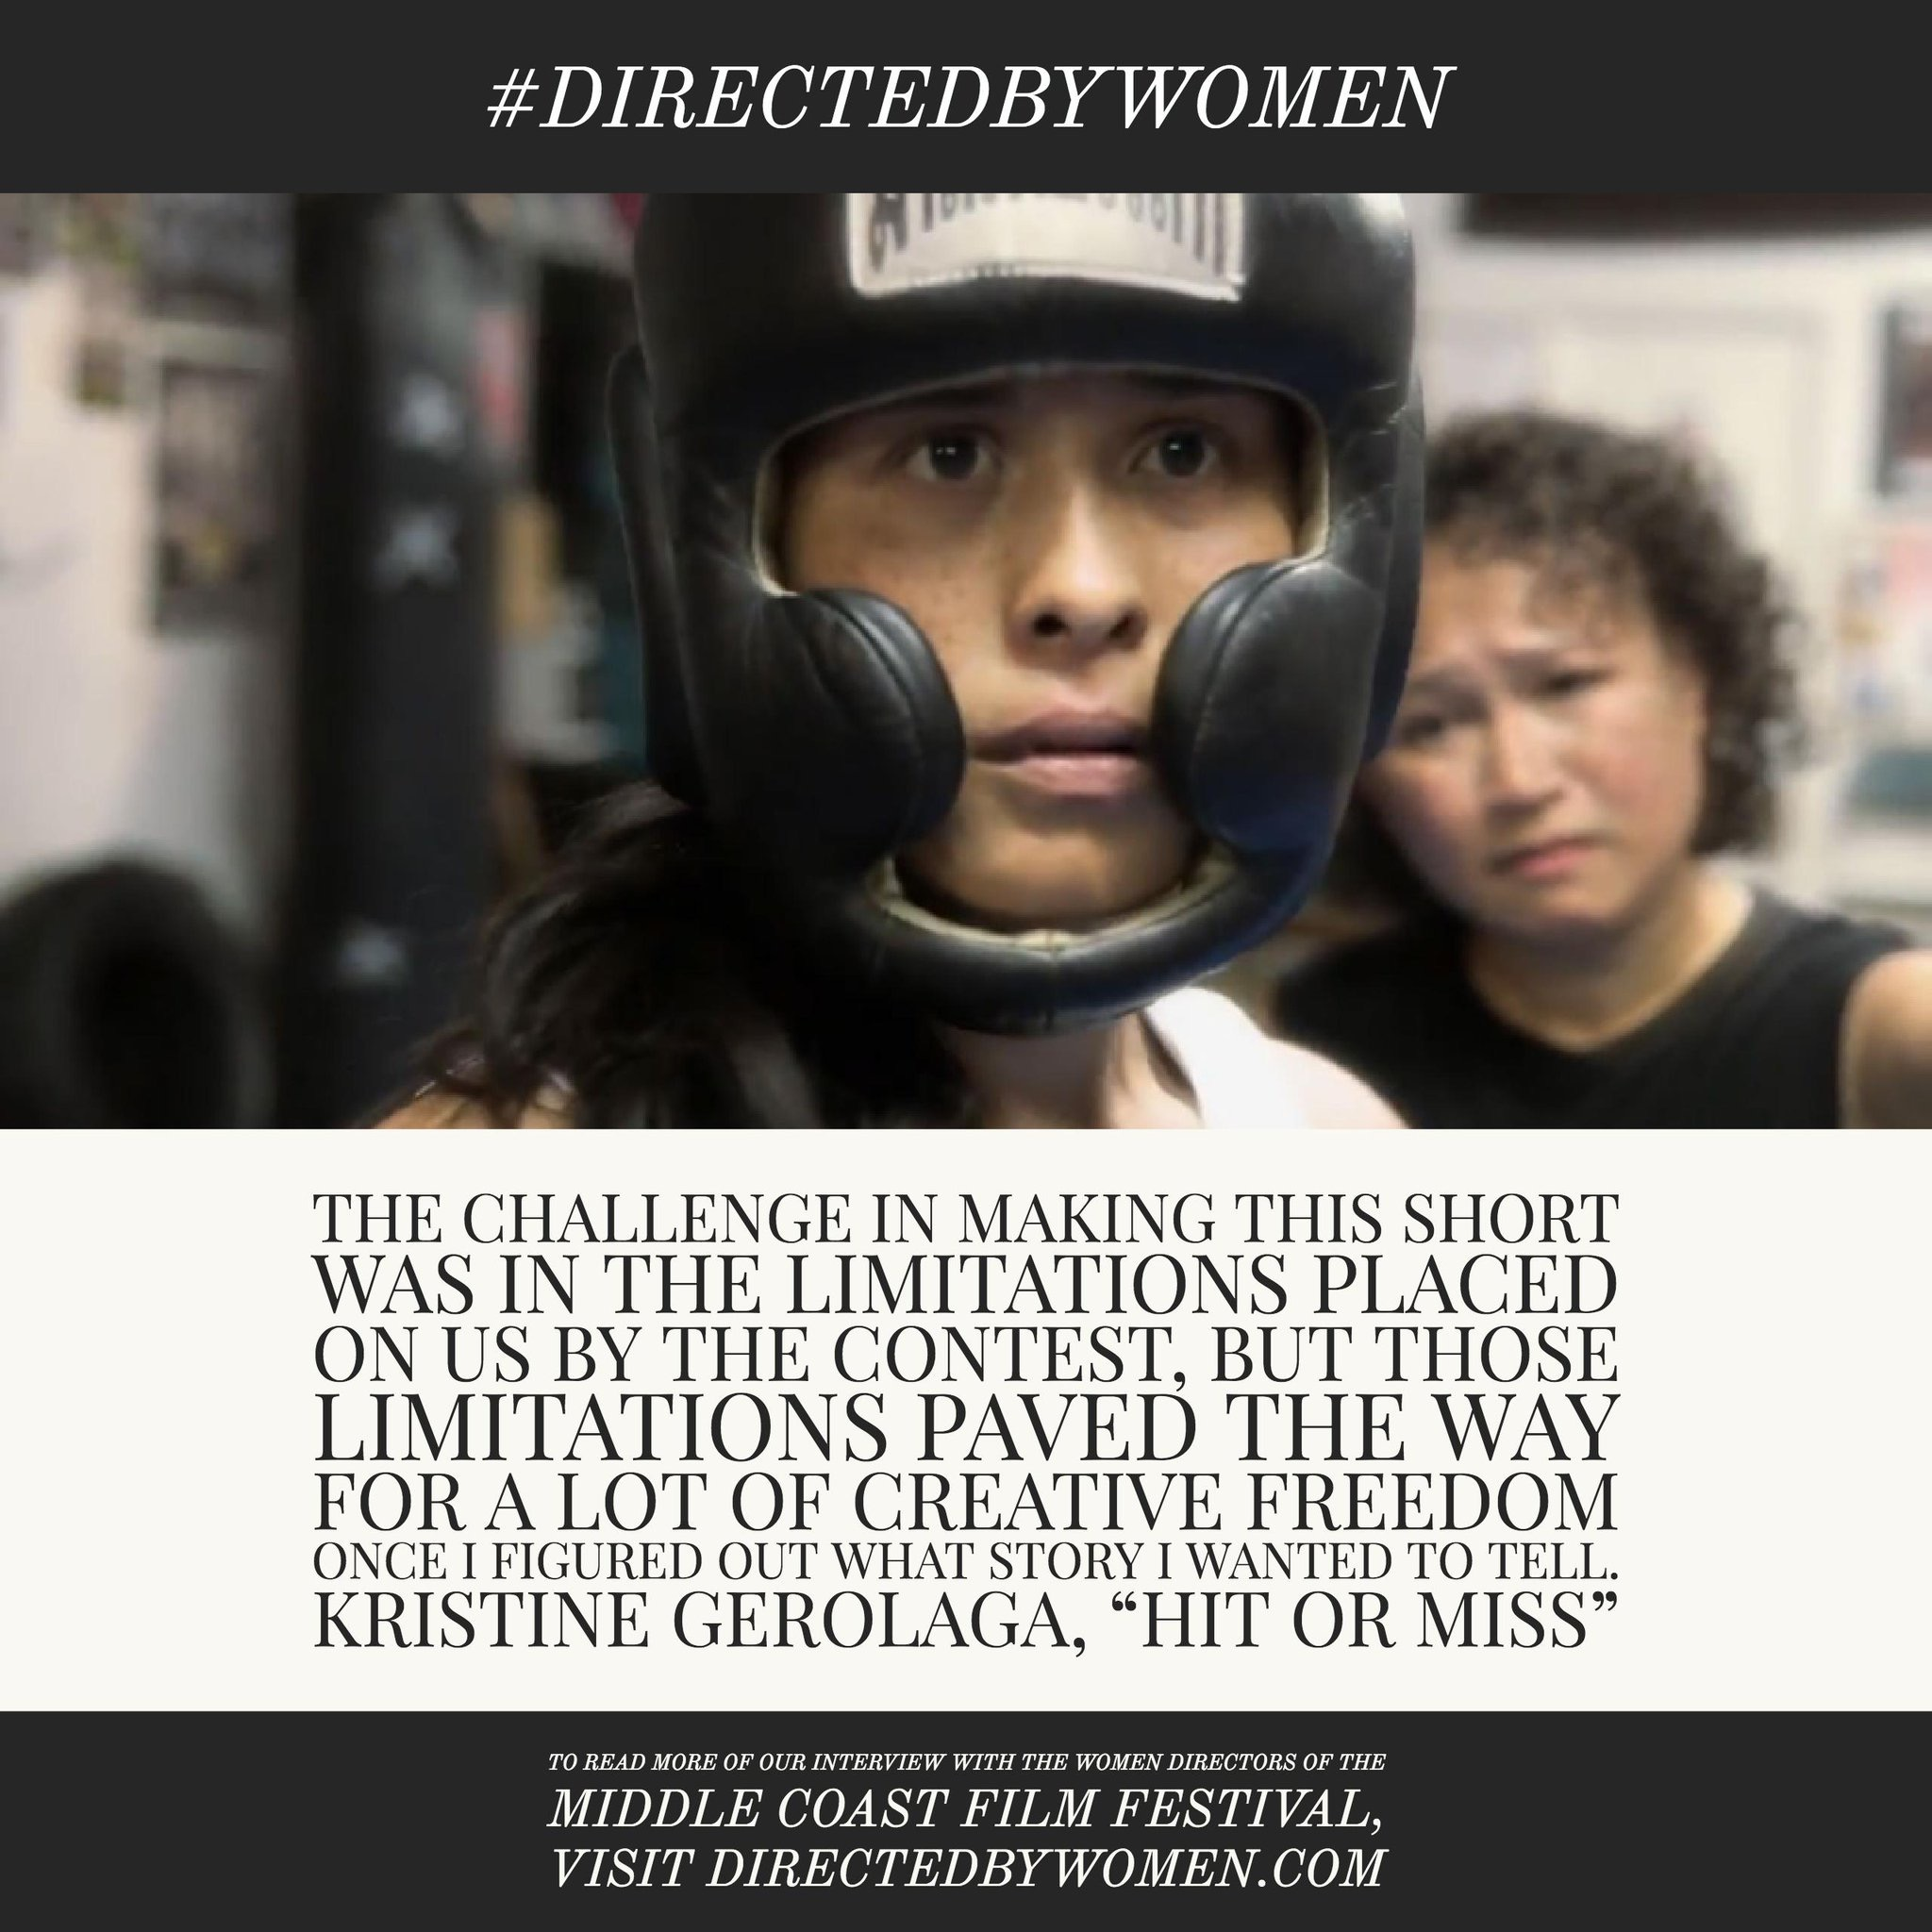 I get to talk about what I loved about making HIT OR MISS in this great article featuring 12 women whose work is showing at the 2017 Middle Coast Film Festival. Check it out on  DirectedByWomen.com !